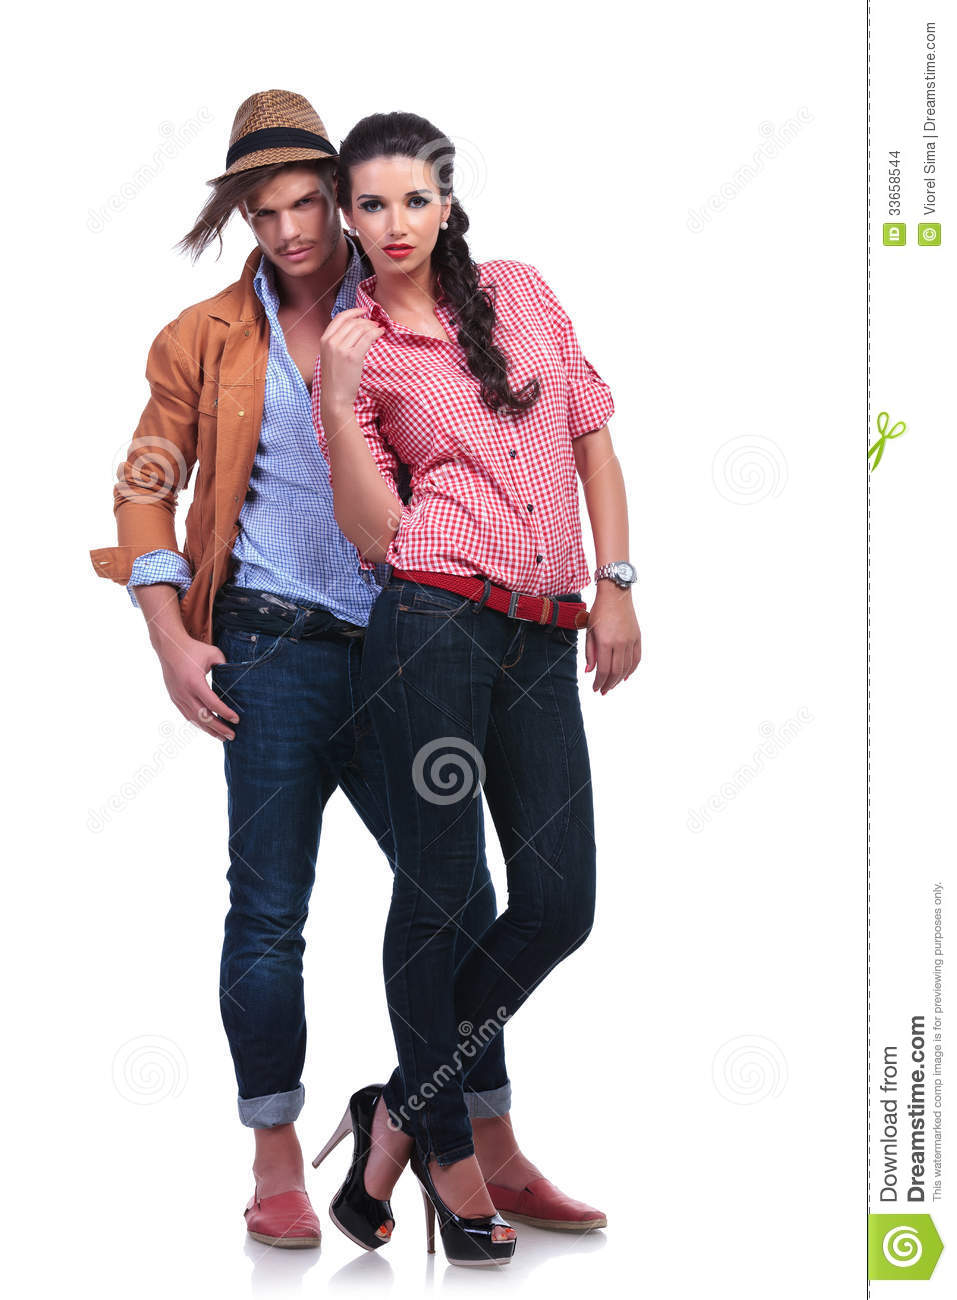 Understand casual teen couple standing certainly right